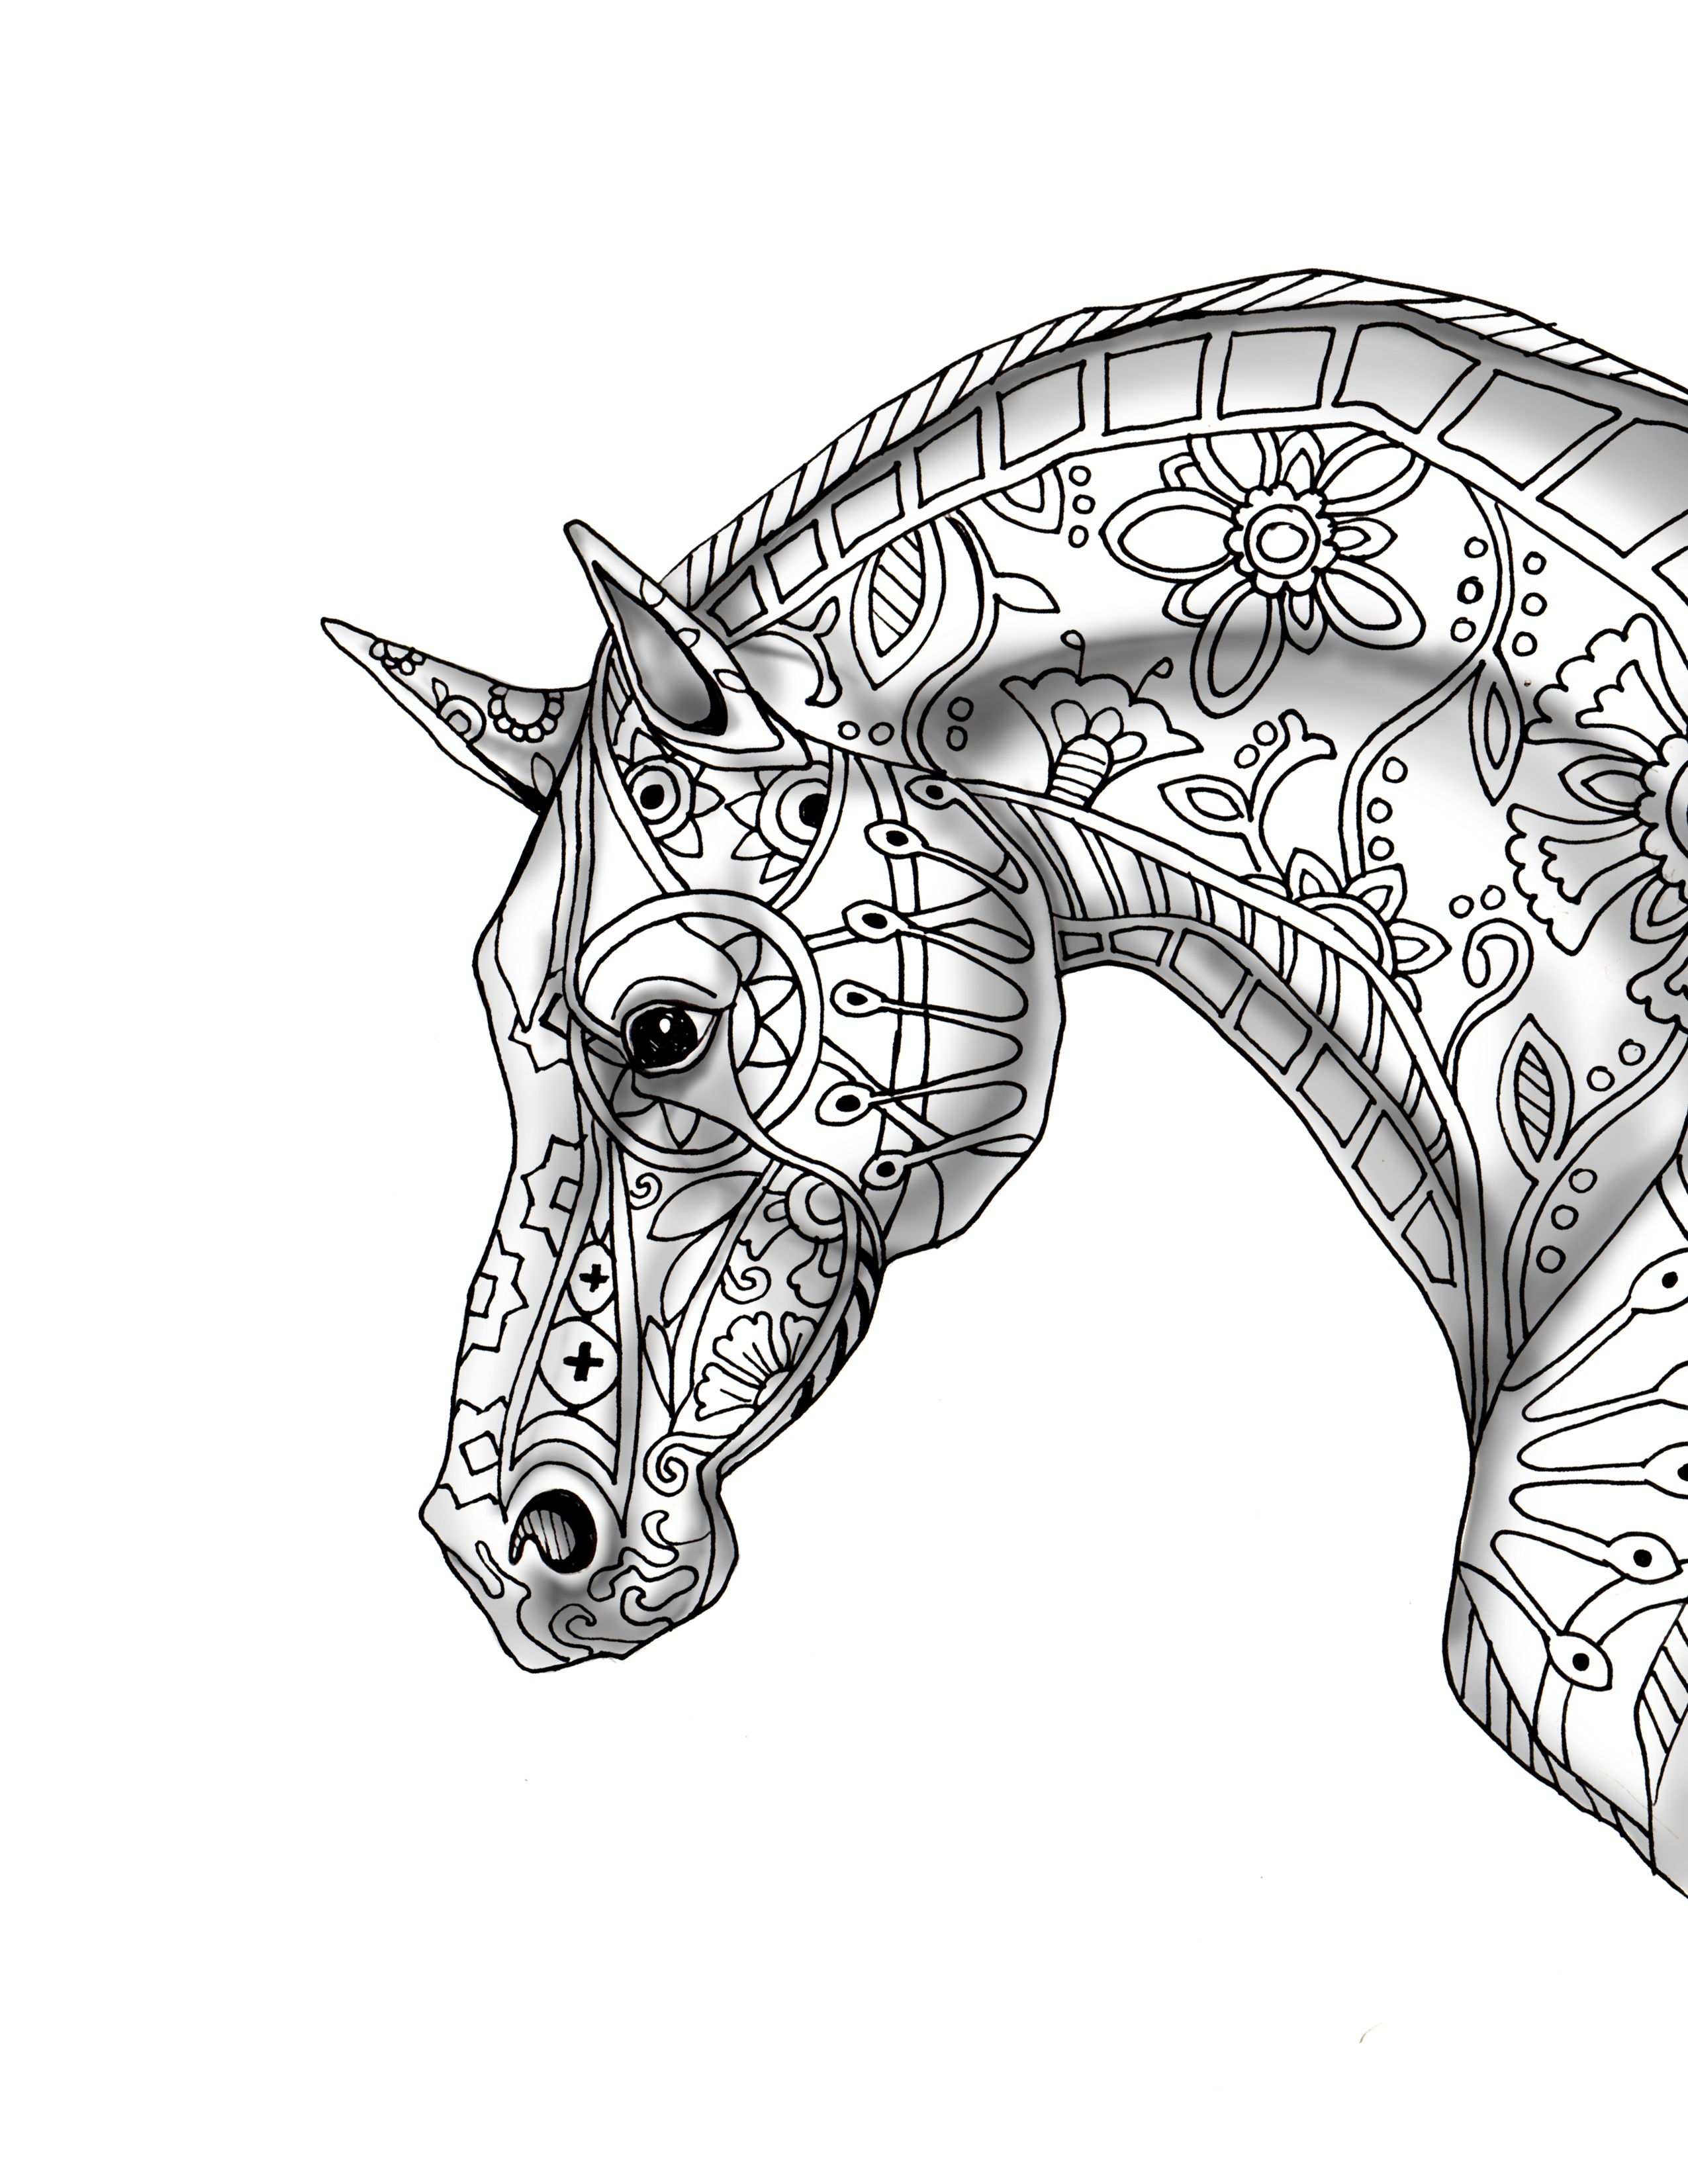 Download Horse Coloring Pages Horse Coloring Books Animal Coloring Pages